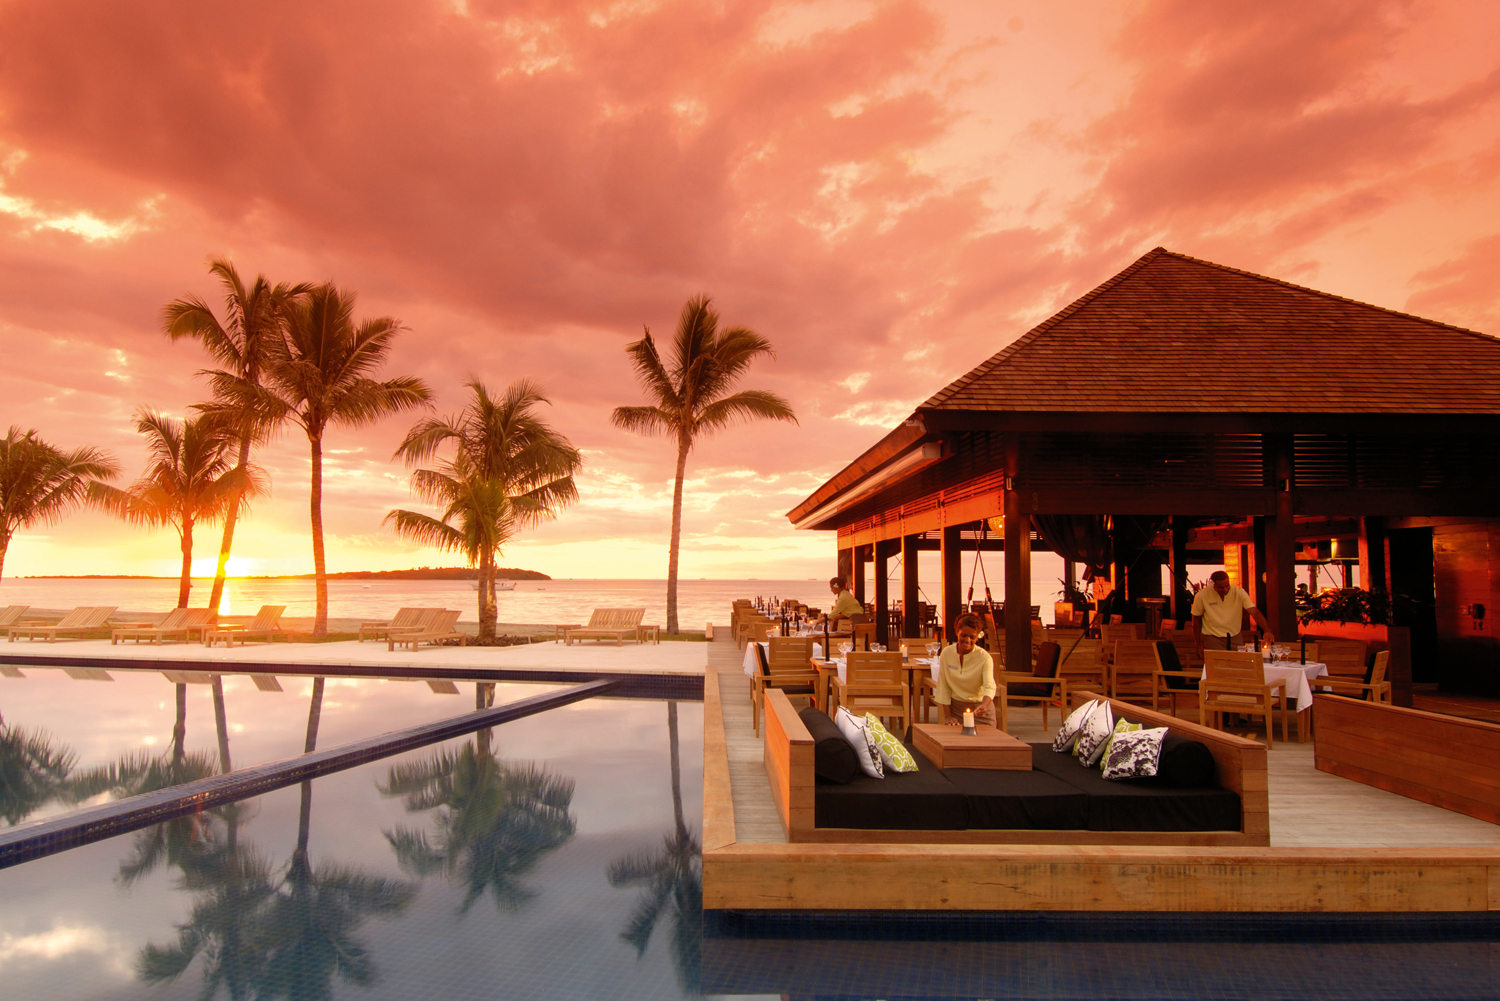 Fiji beach resort and spa luxury under 250 for Luxury beach hotels